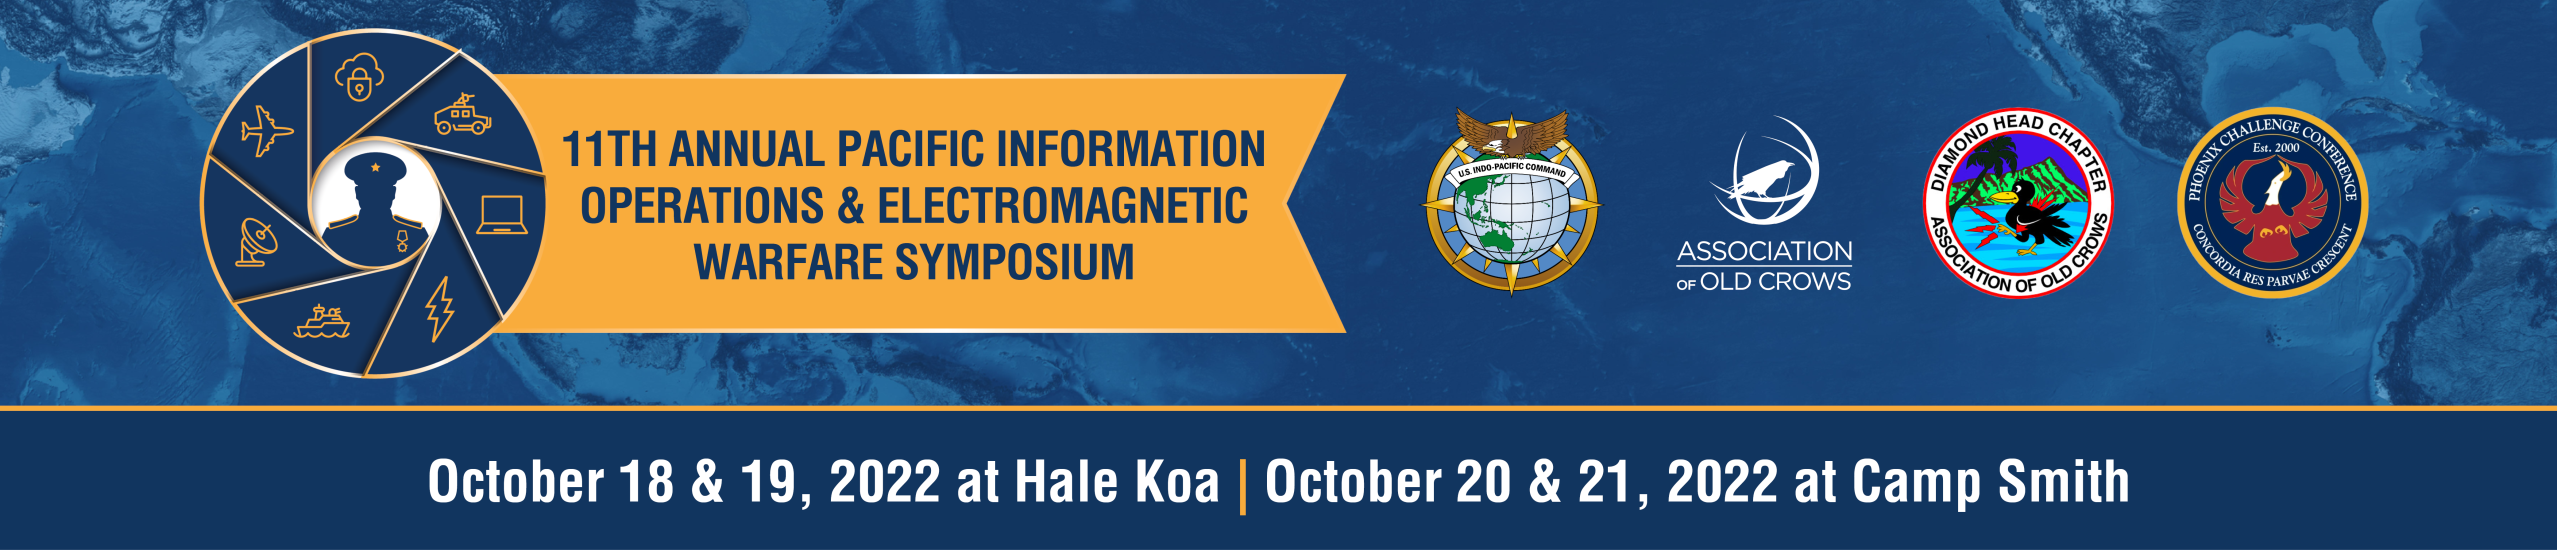 9th Annual Information Operations & Electronic Warfare Symposium